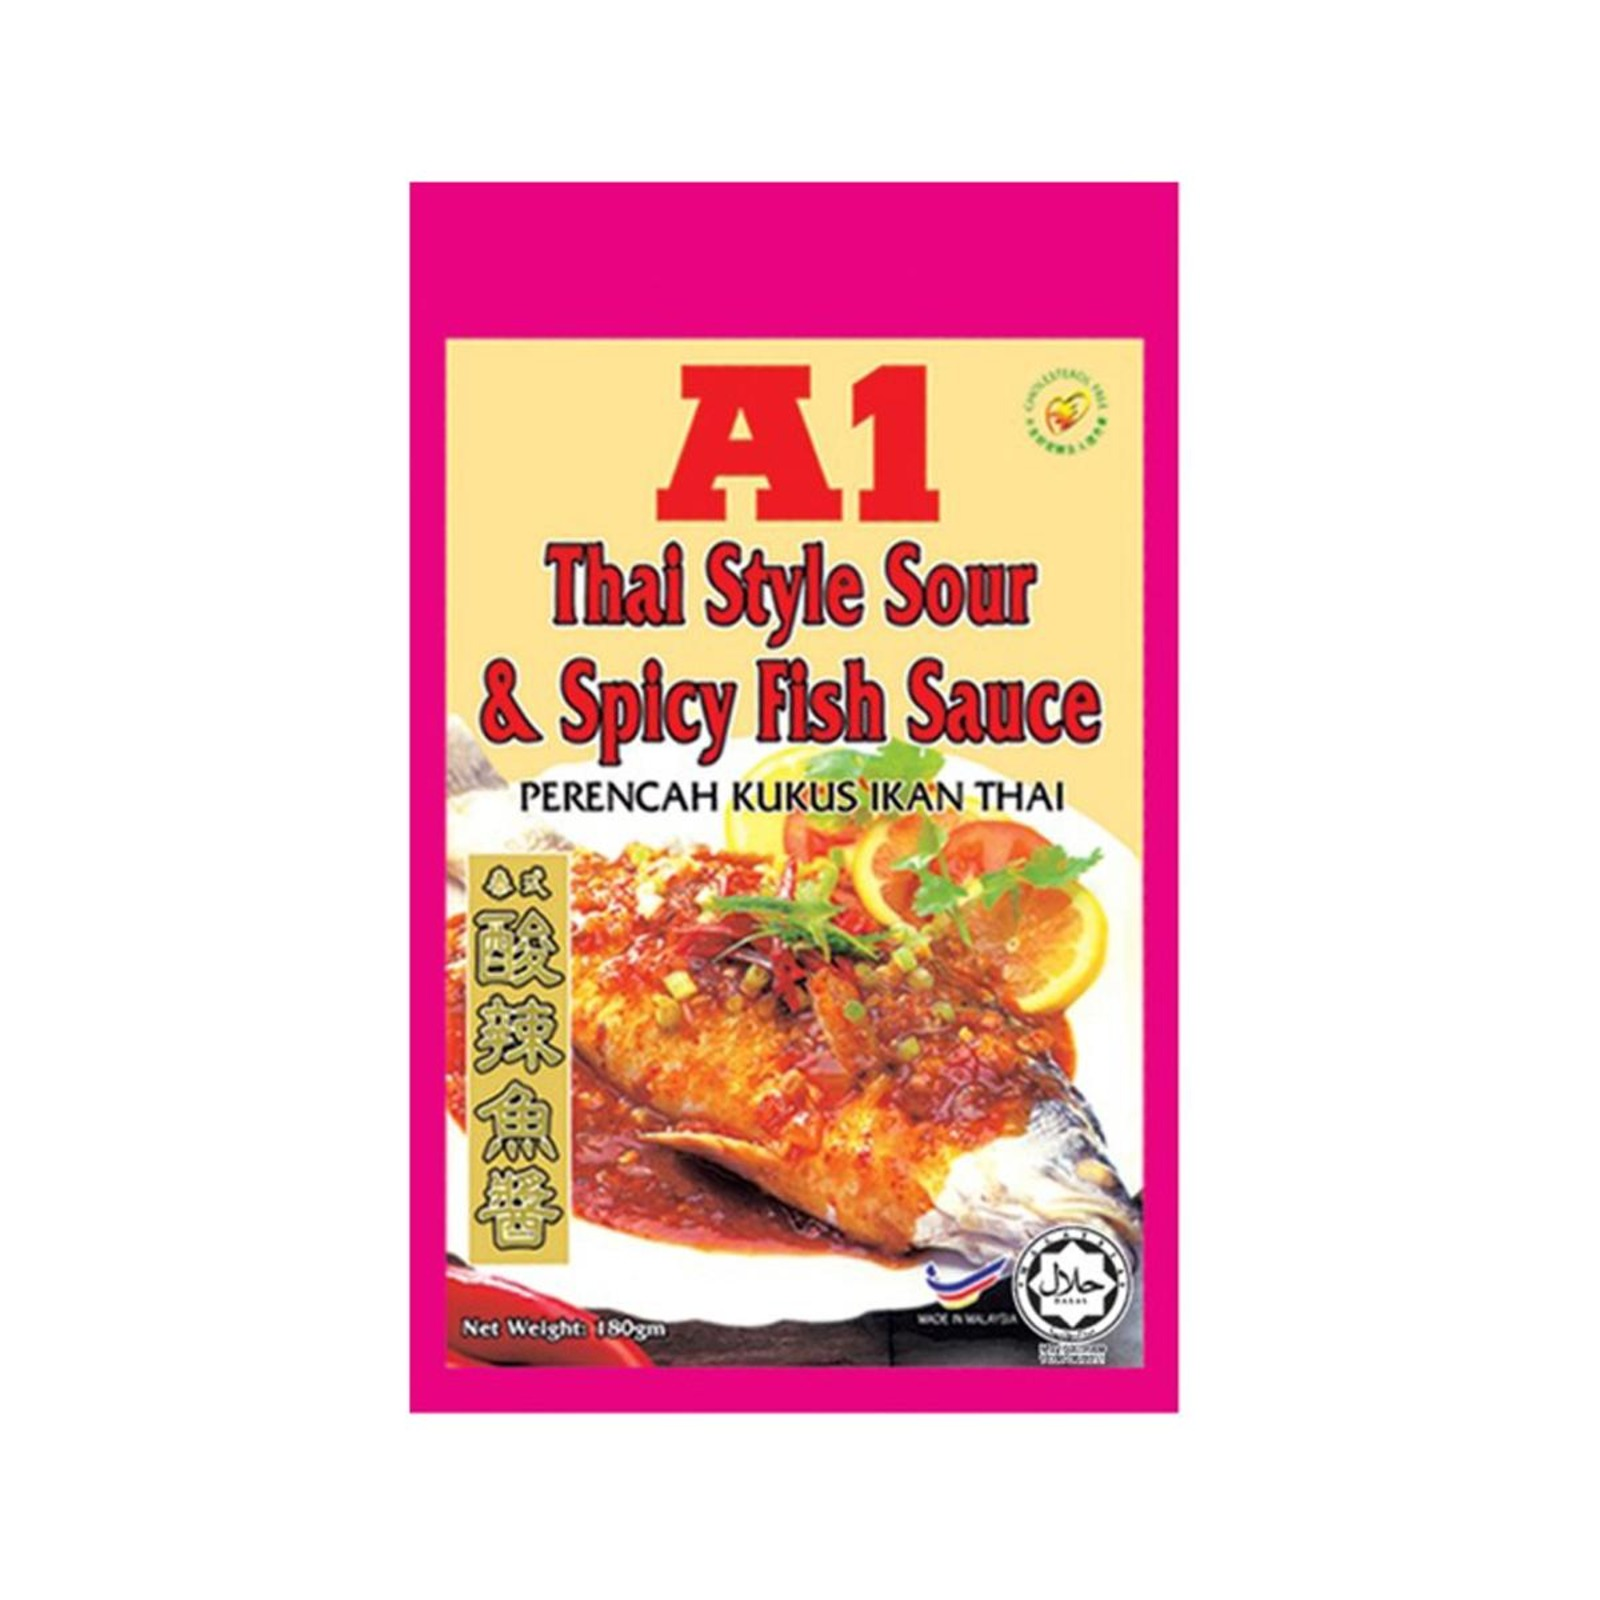 A1 Thai Style Sour And Spicy Fish Sauce